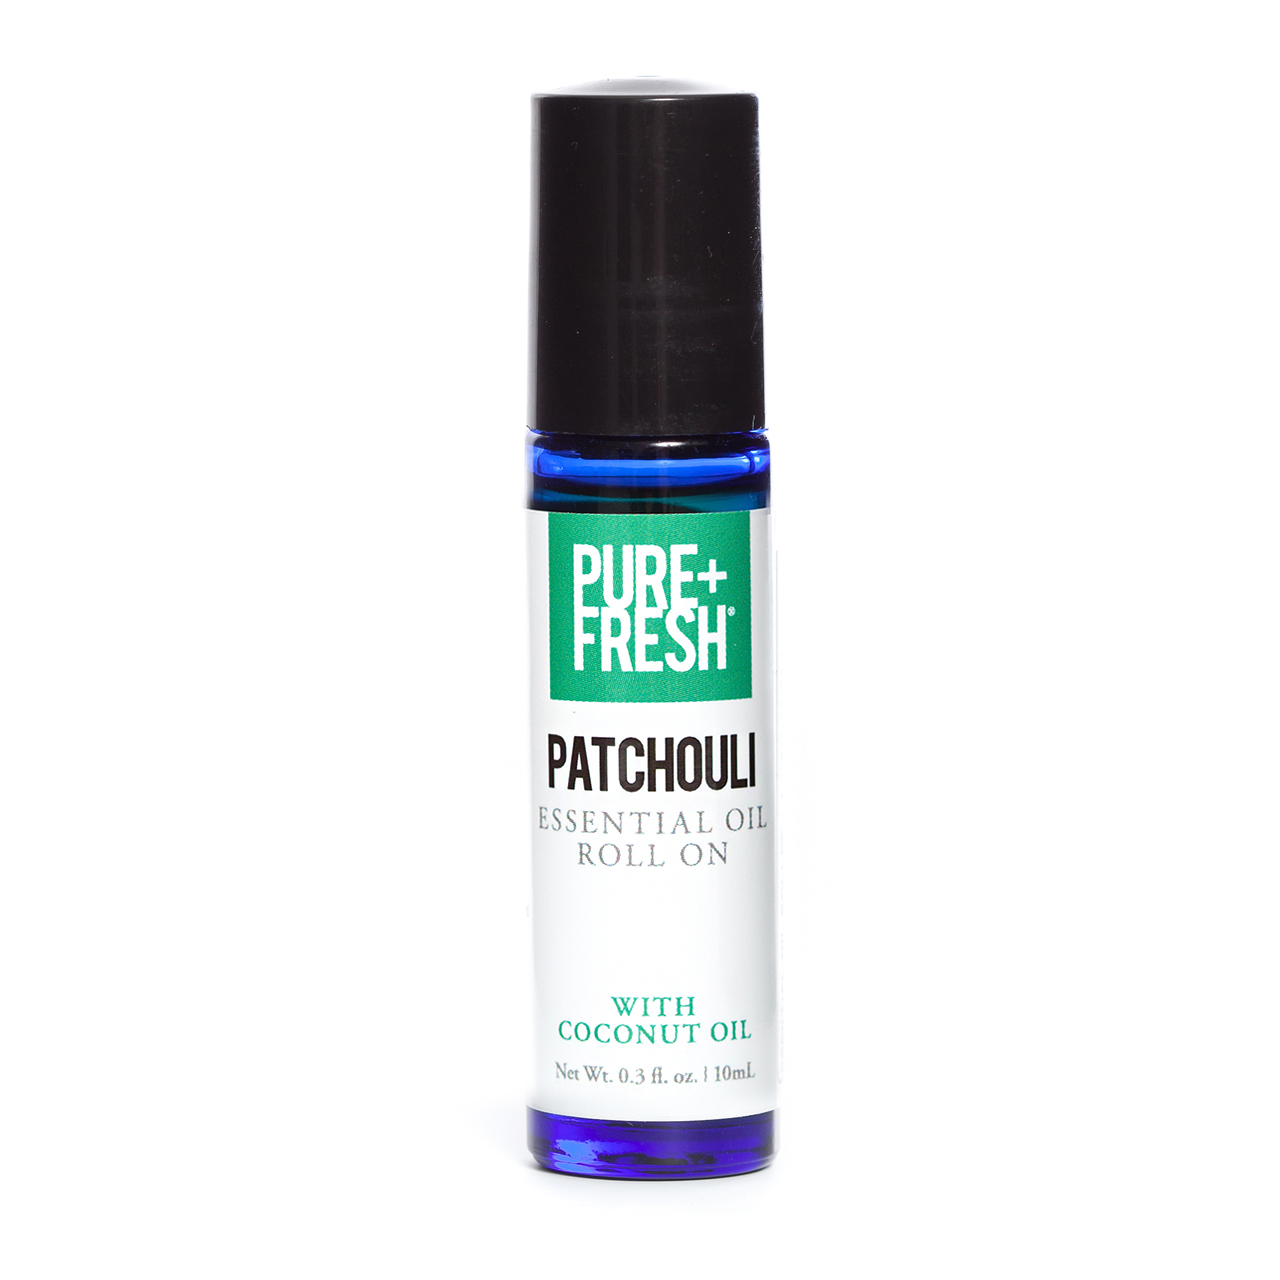 0.3fl oz. Bottle of Pure+Fresh Patchouli Roll on Essential Oil